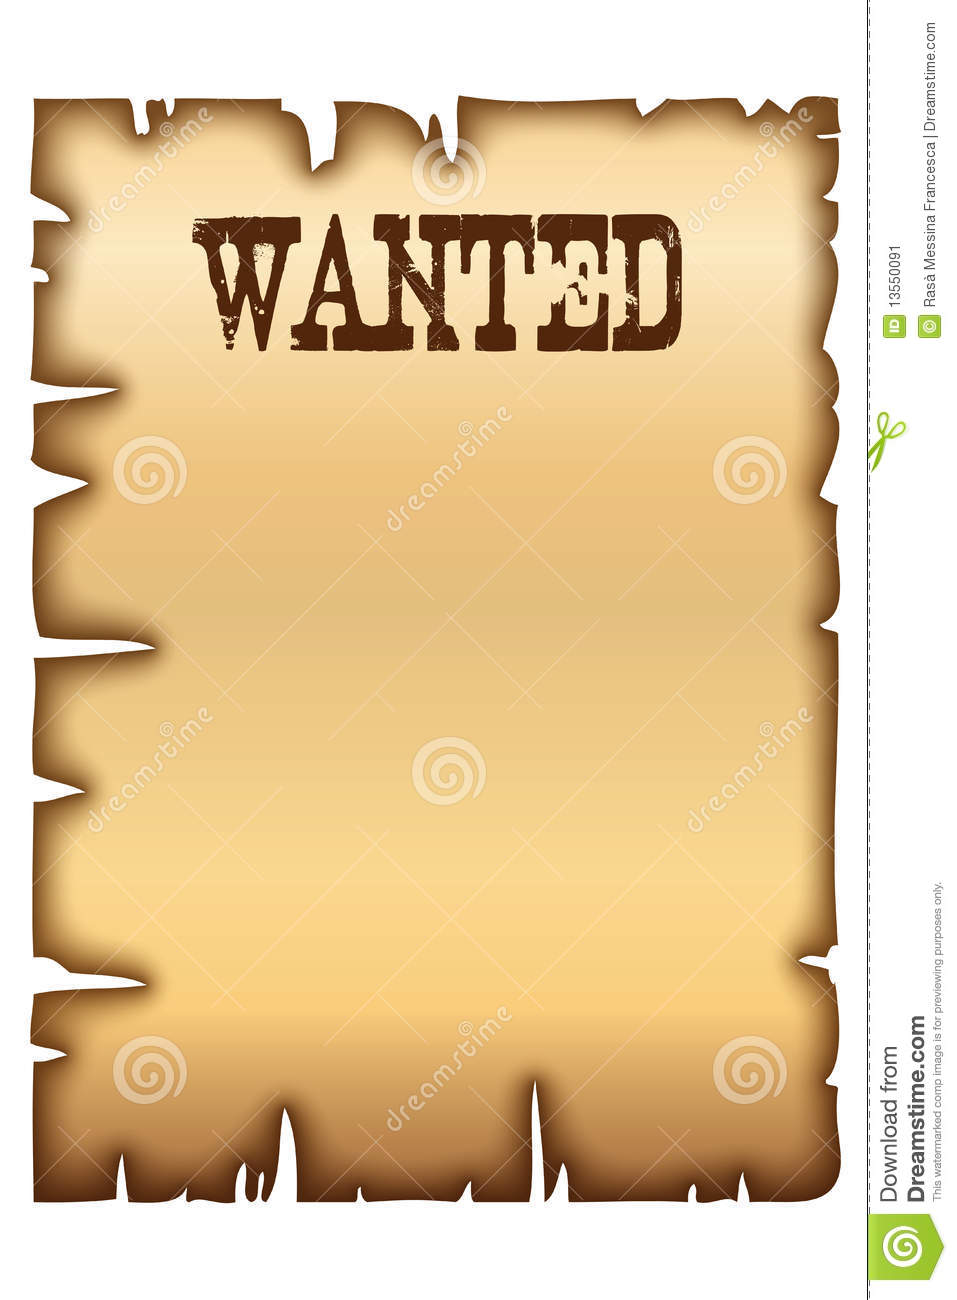 Wanted Poster Stock Image - Image: 13550091